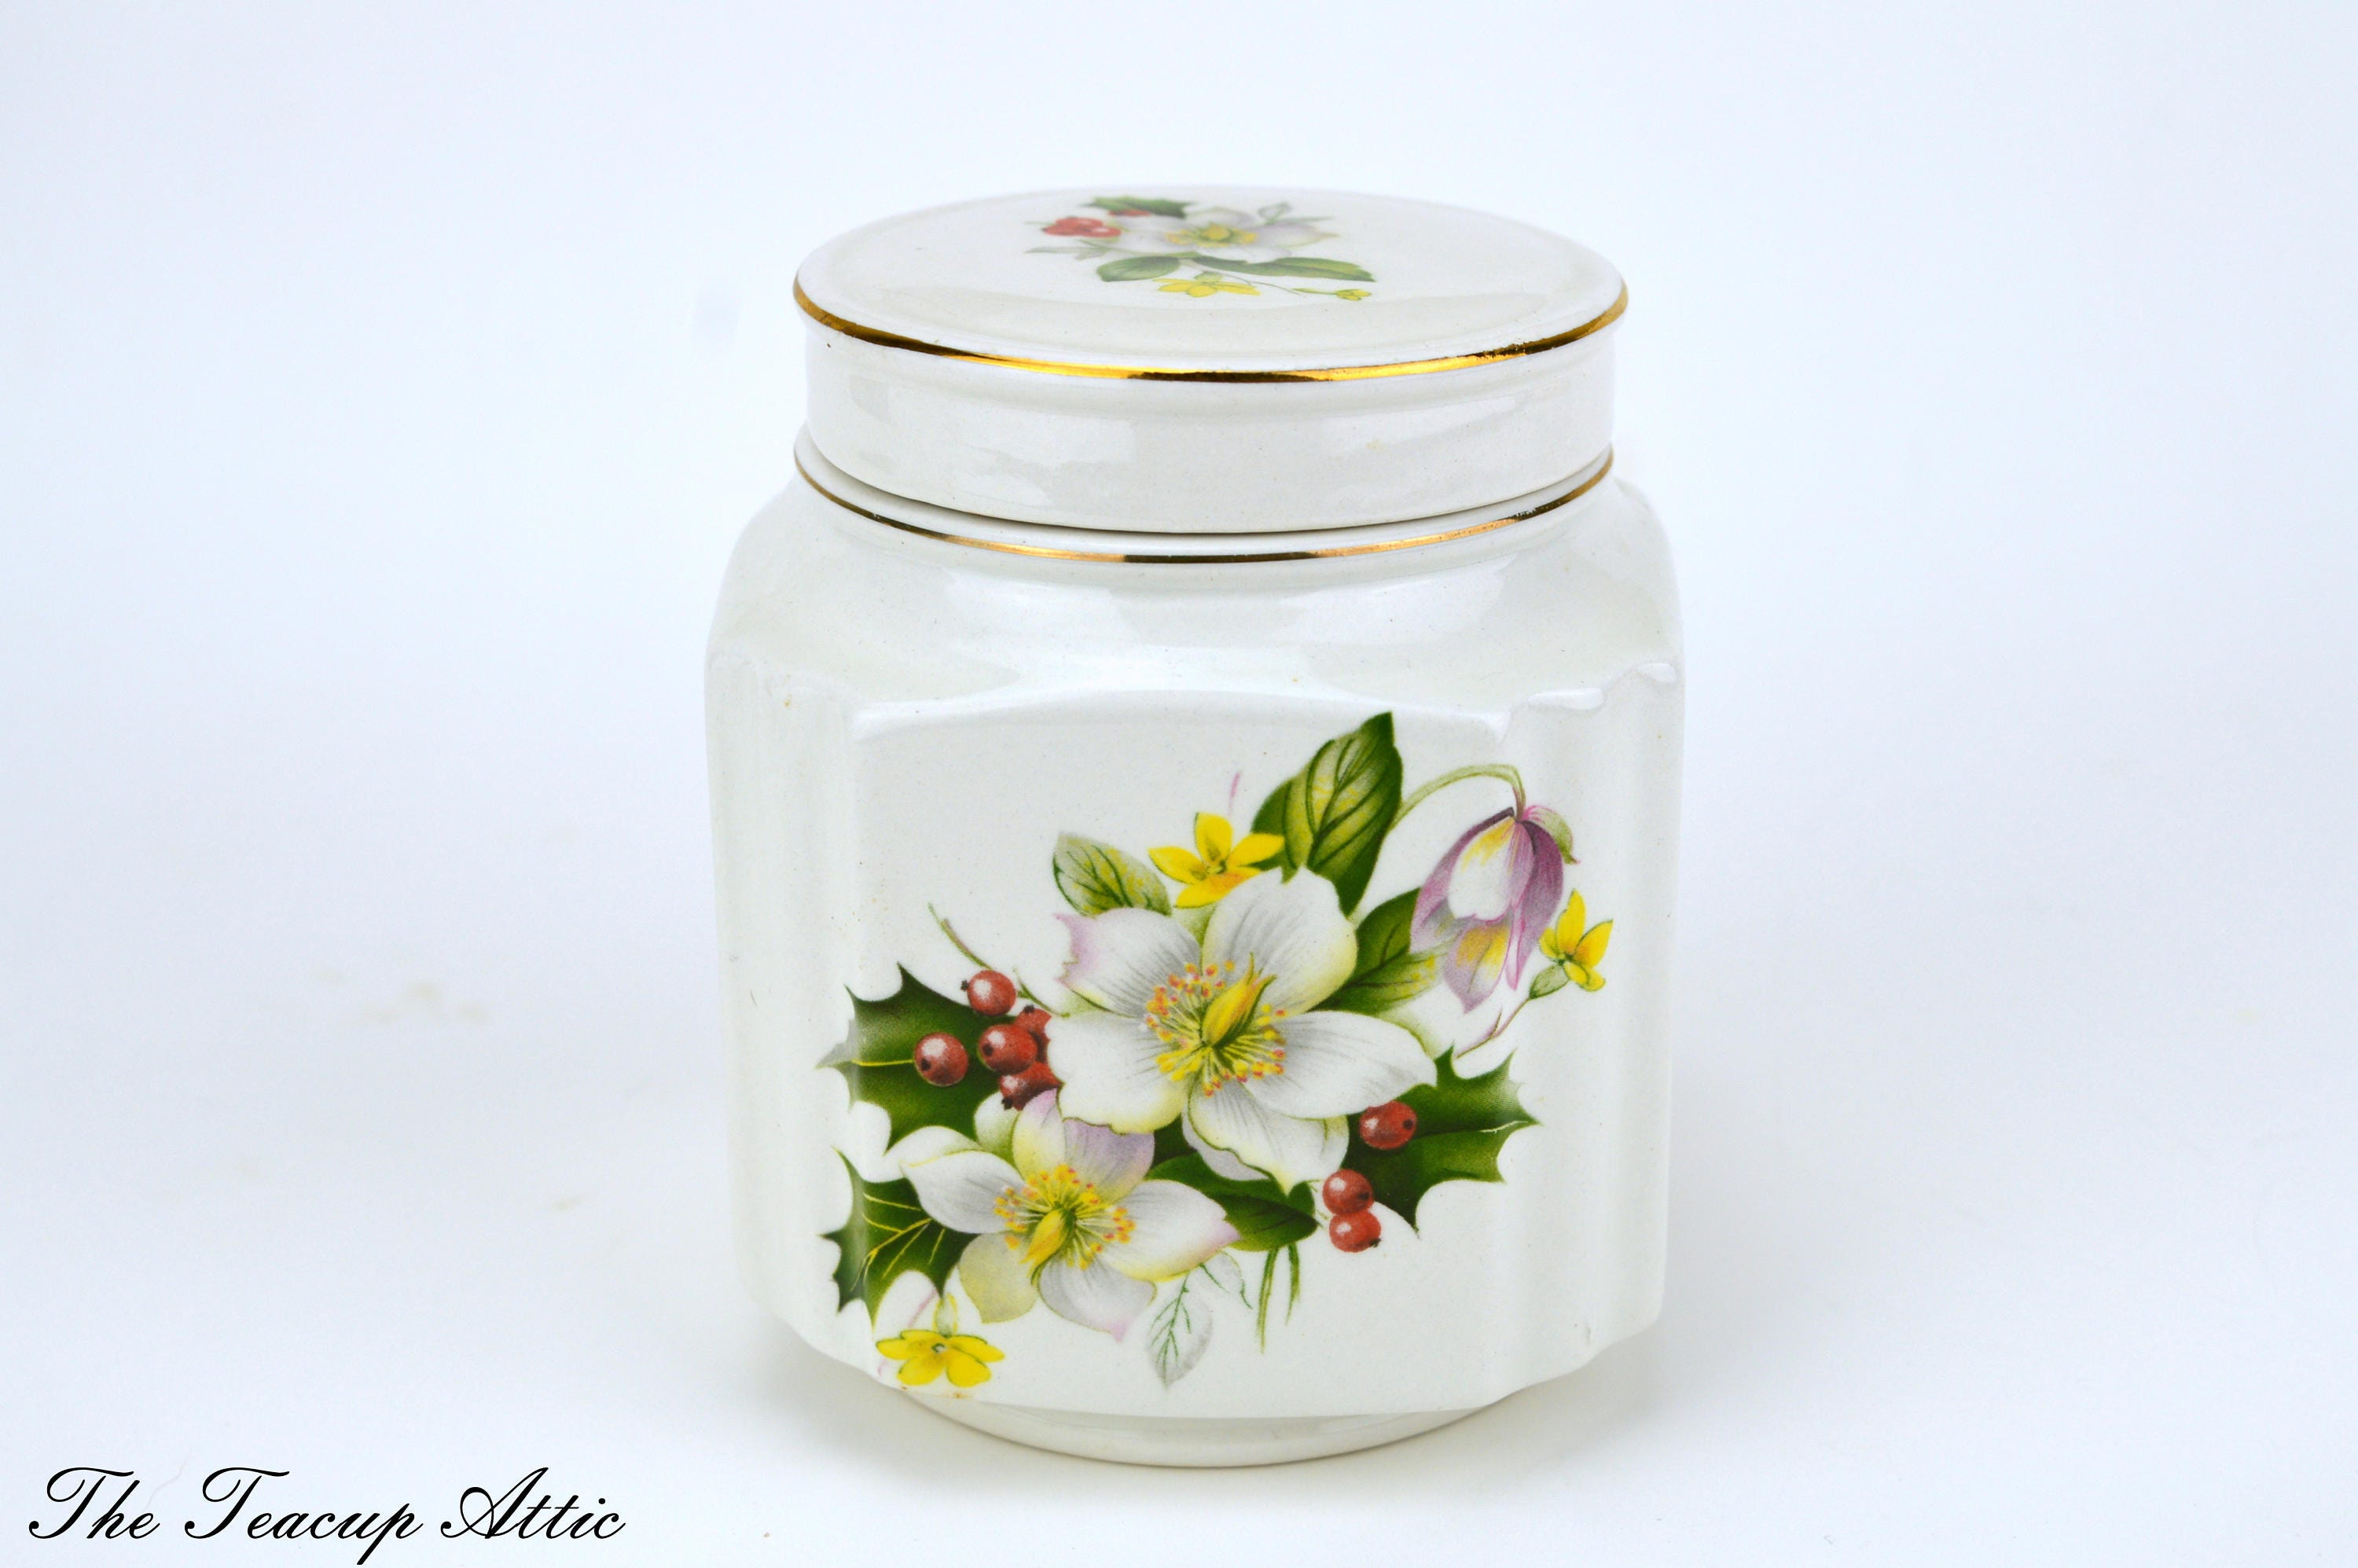 Sadler Vintage Ginger Jar, Porcelain Tea Caddy, ca. 1940